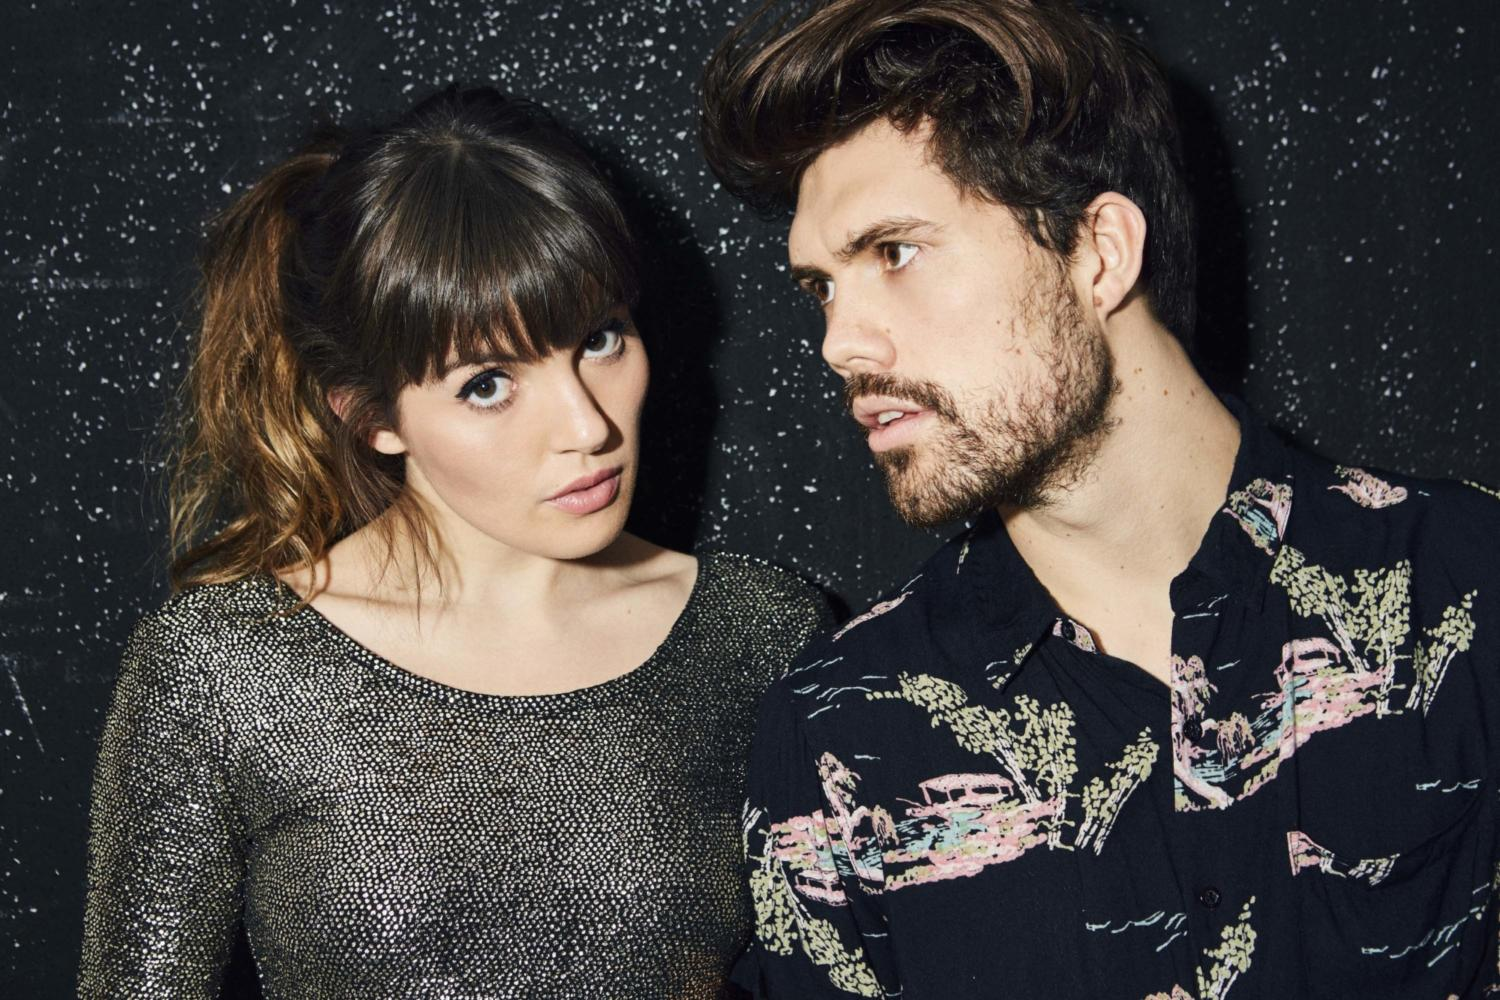 Oh Wonder's new album 'Ultralife' is streaming now